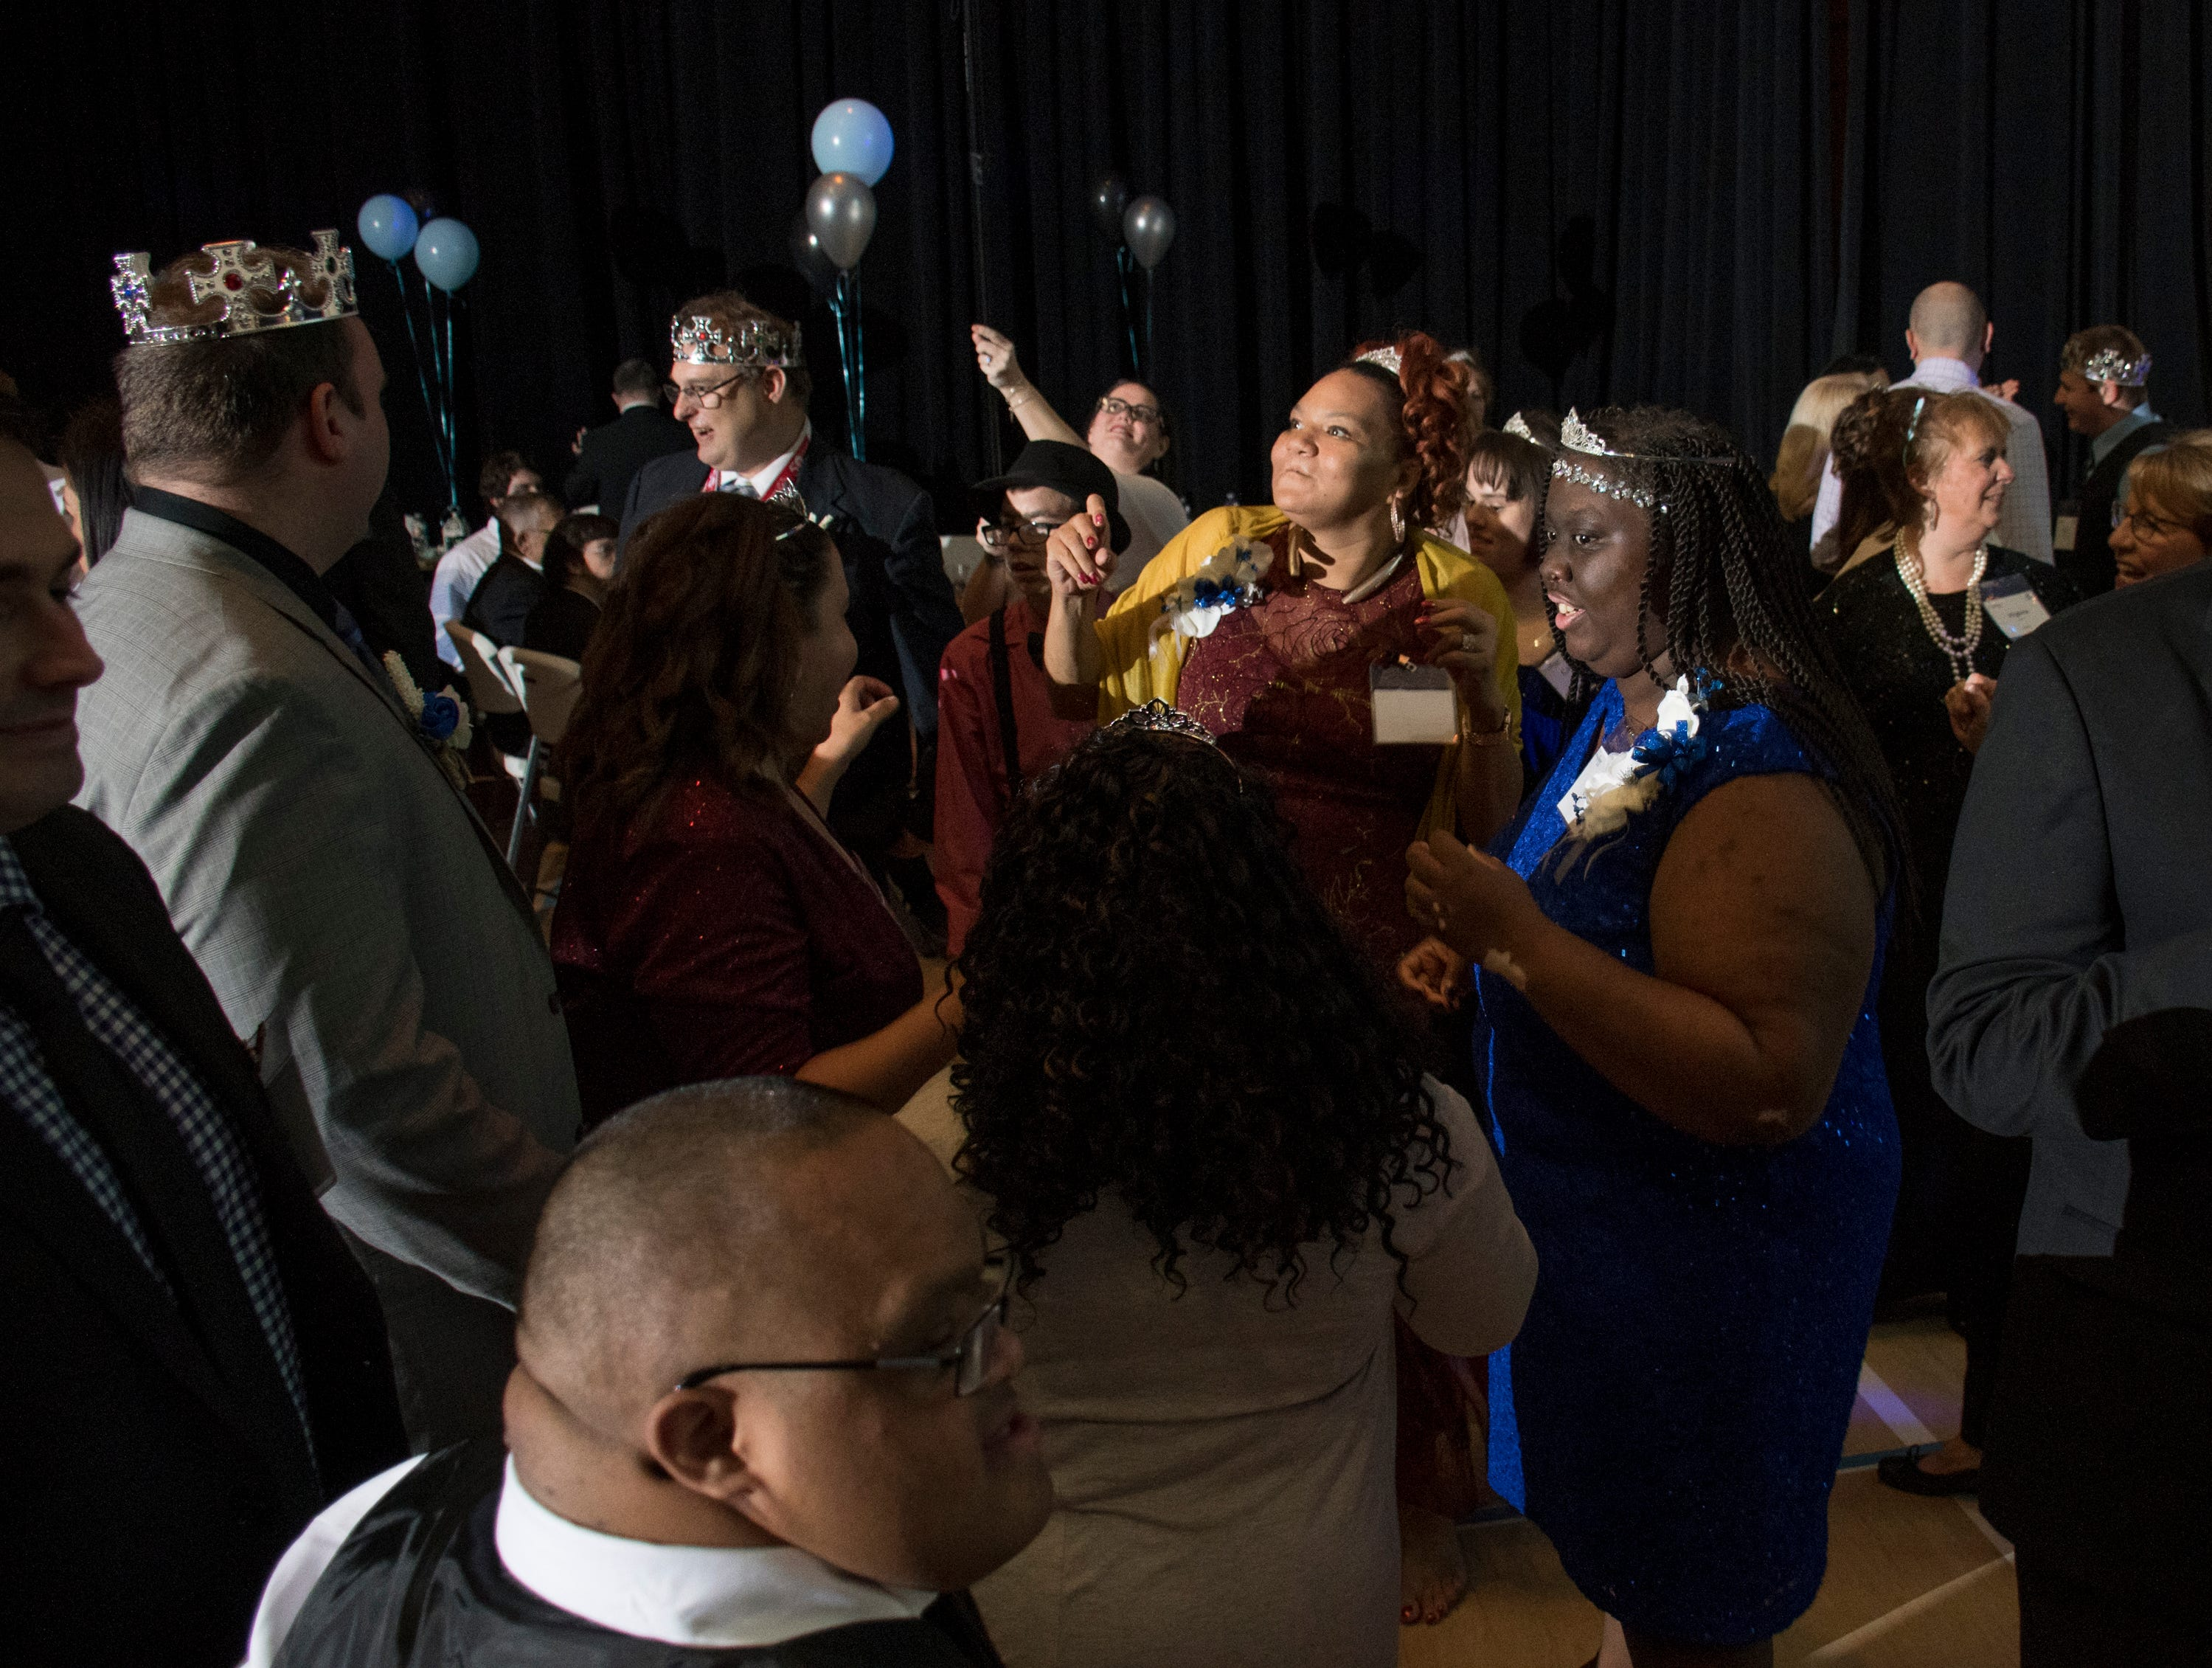 Night to Shine prom for people with special needs sponsored by the Tim Tebow Foundation at Perdido Bay United Methodist Church in Pensacola on Friday, February 8, 2019.